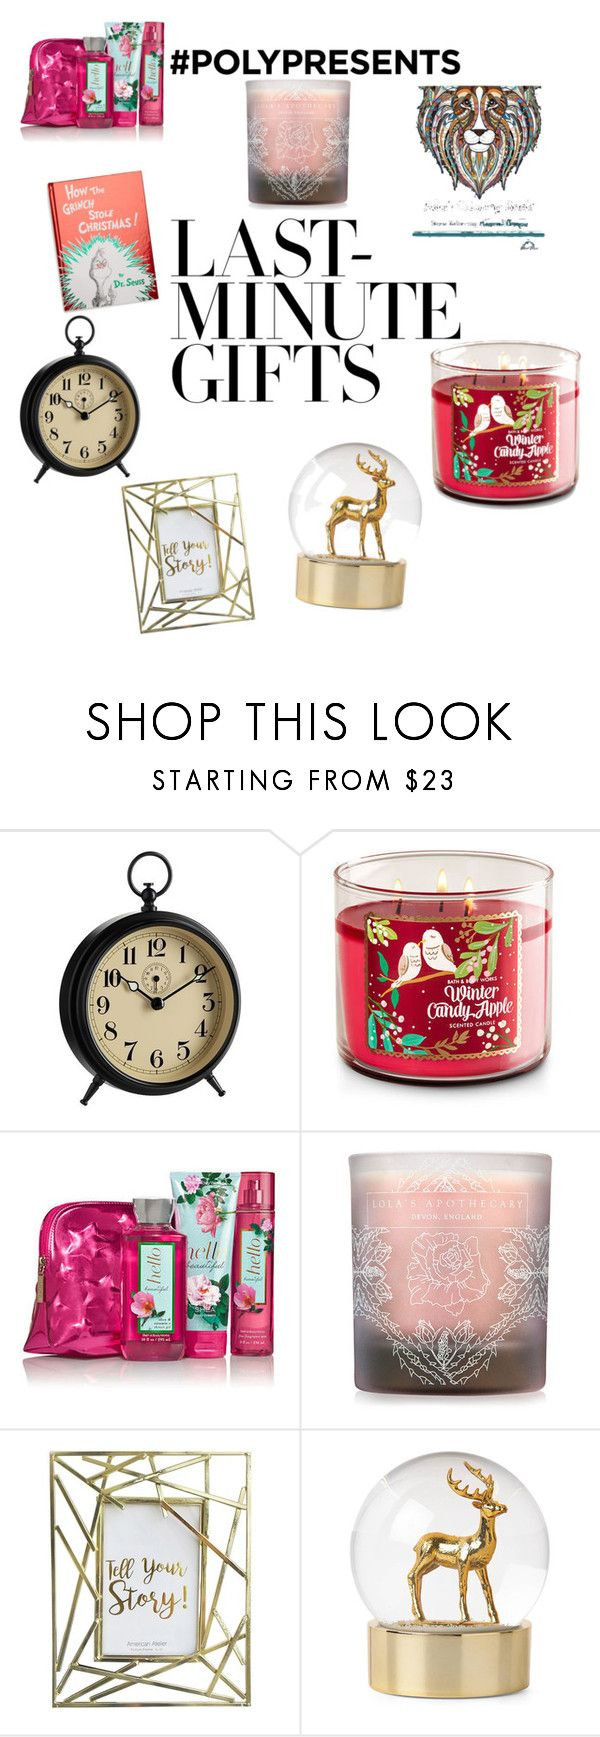 """#PolyPresents: Last-Minute Gifts"" by chandragarza ❤ liked on Polyvore featuring Pottery Barn, Lola's Apothecary, Jay Import, Penguin Random House, contestentry and polyPresents"